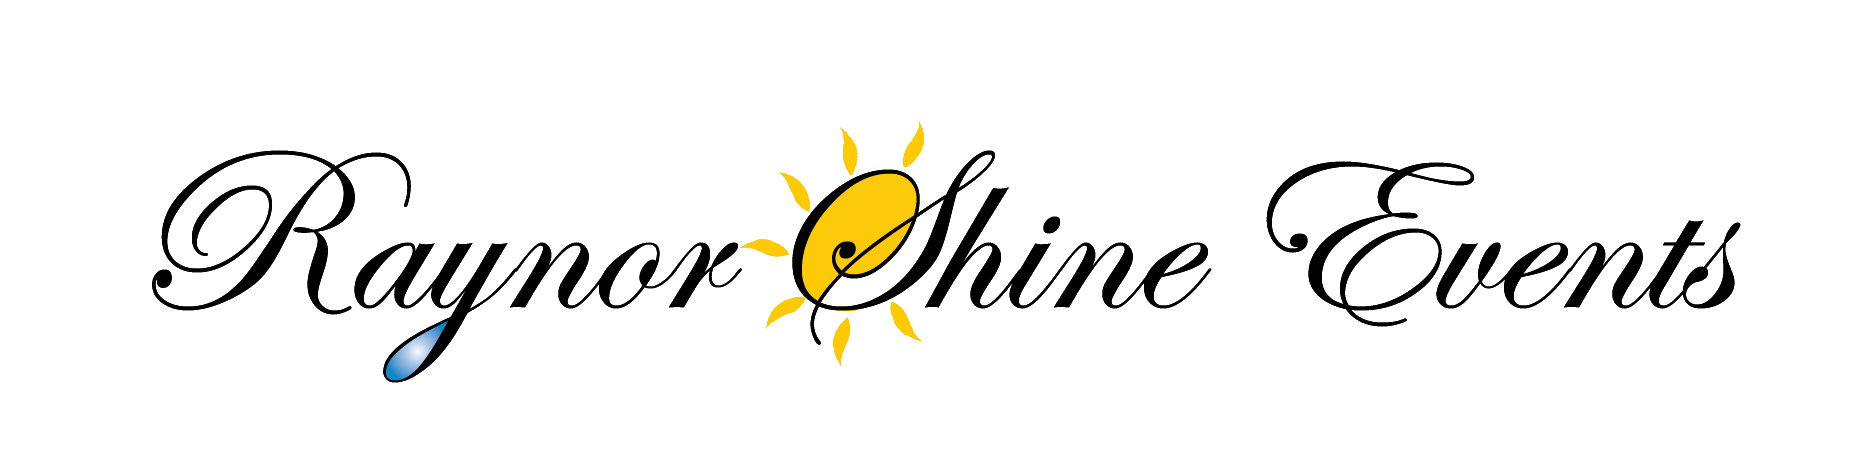 Raynor Shine Events, LLC